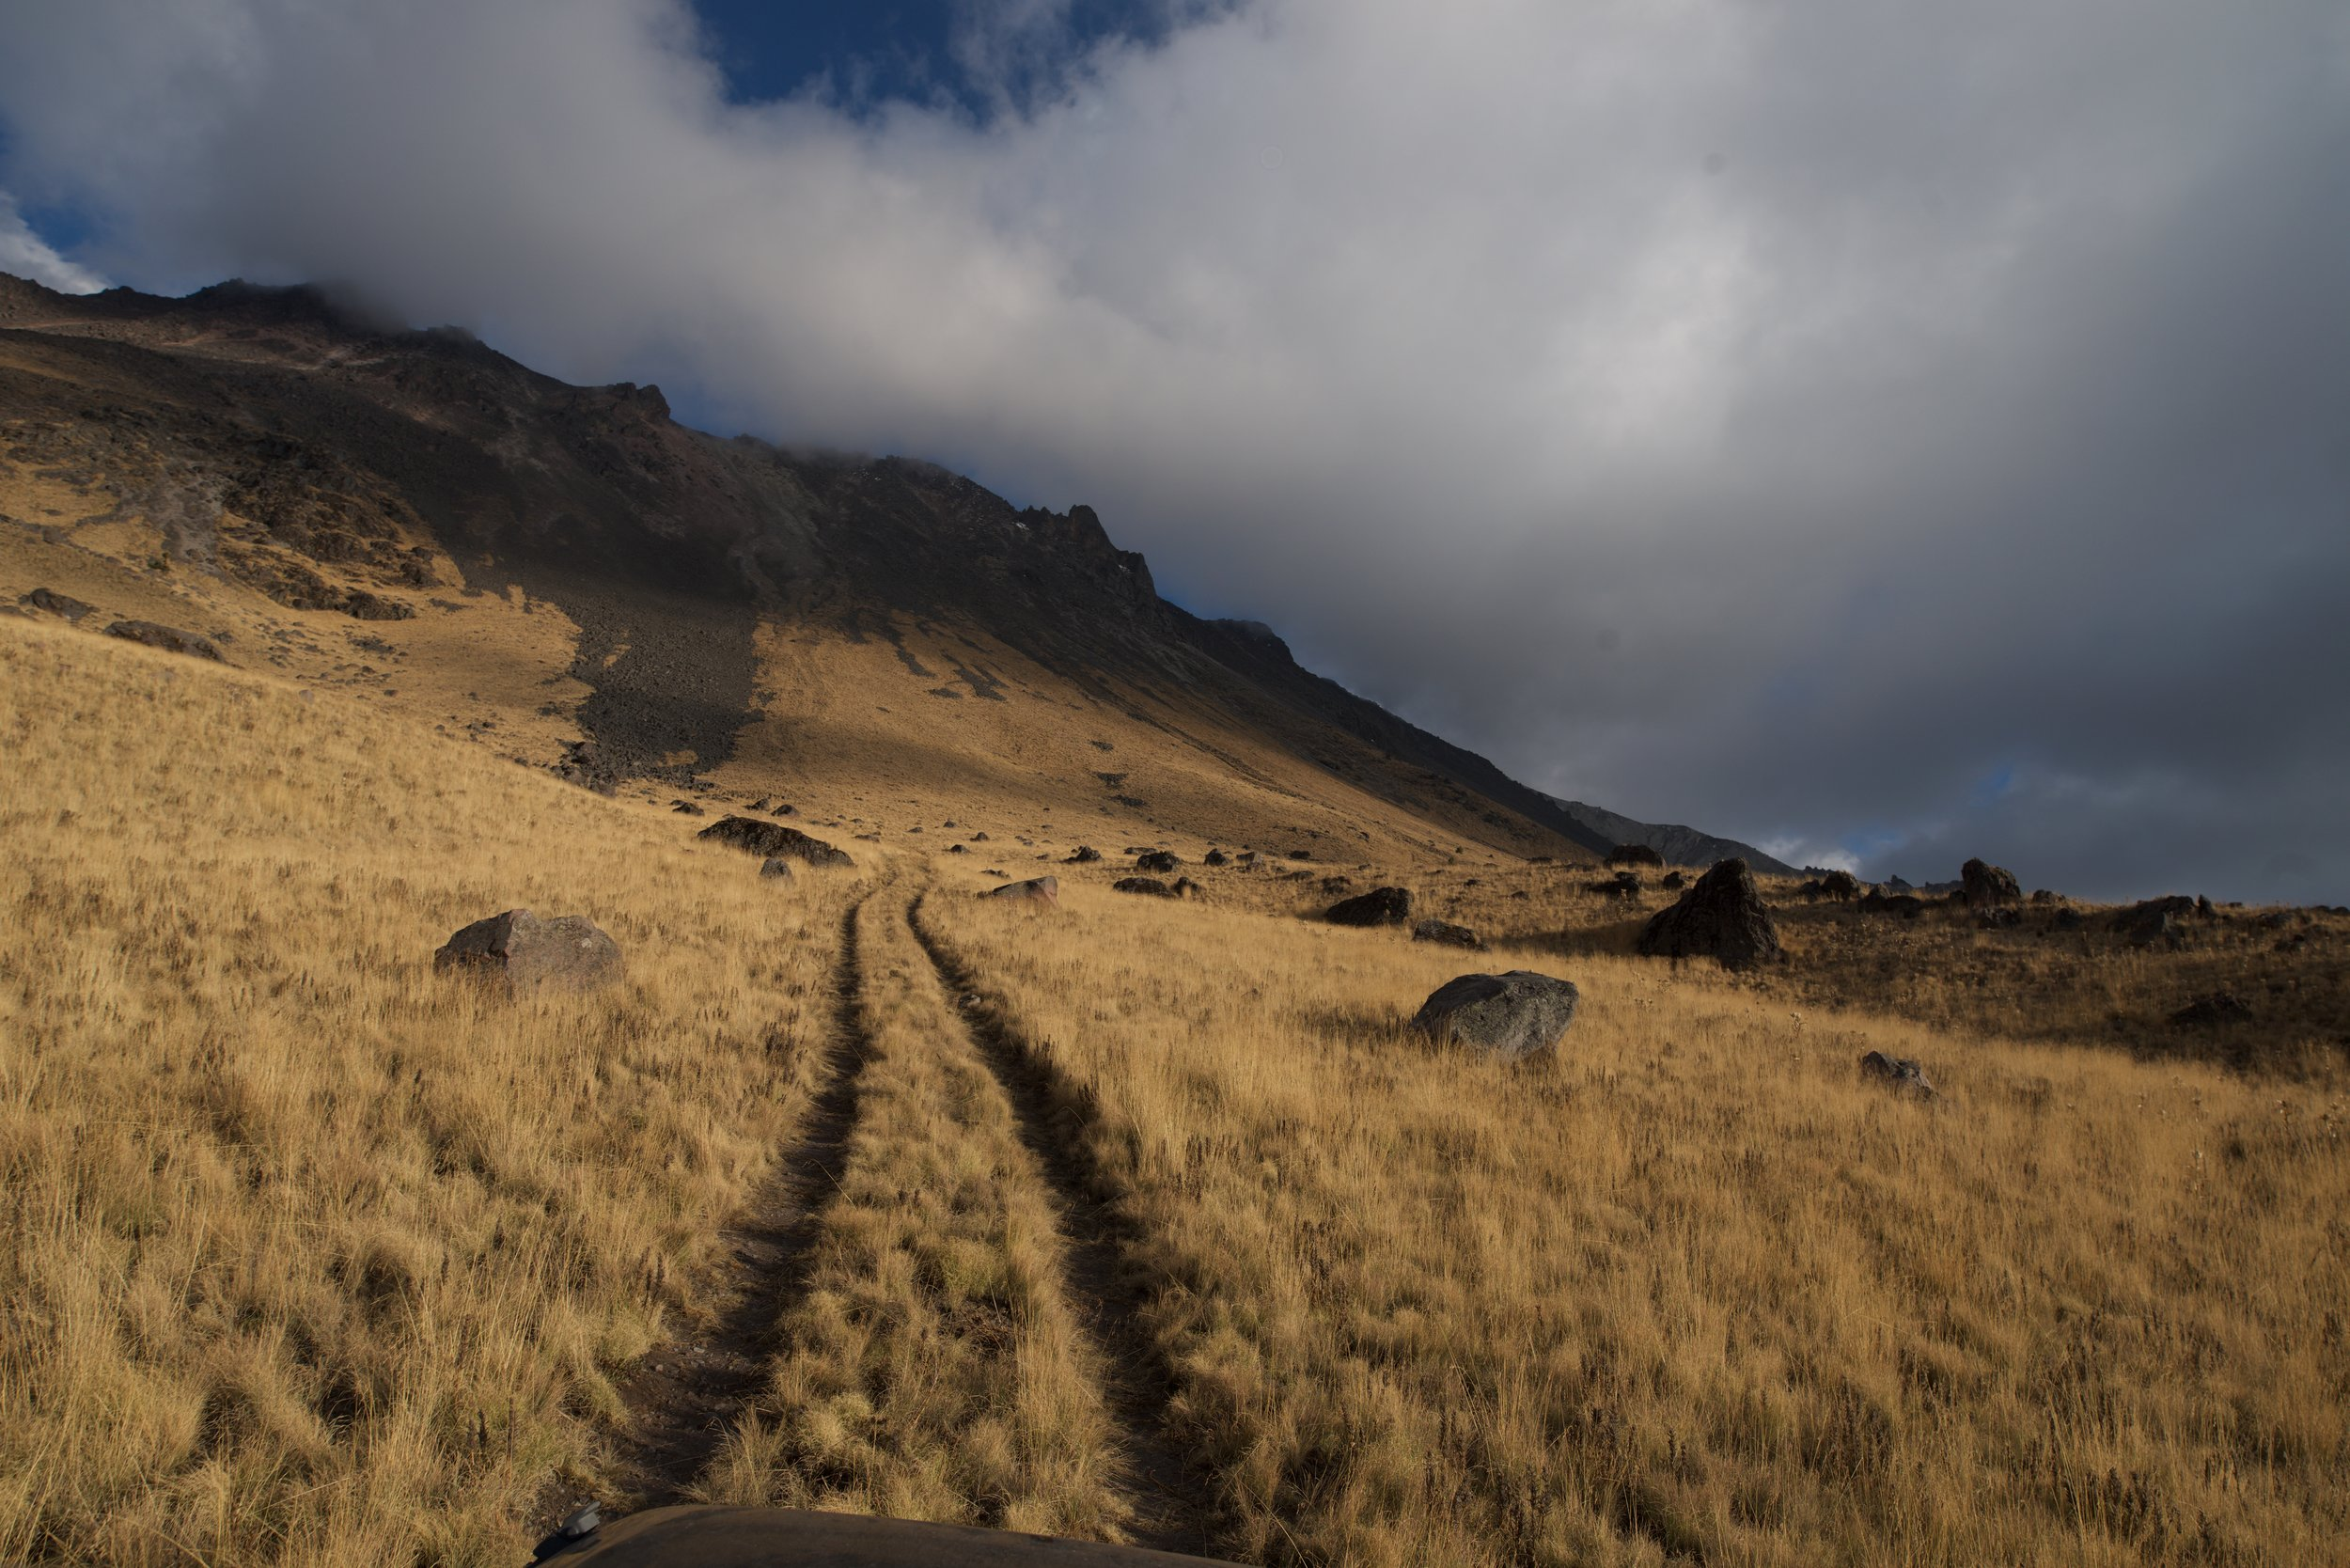 Climbing a volcano in 4x4 low-range. I went over 4000 metres in Mexico on a volcano.